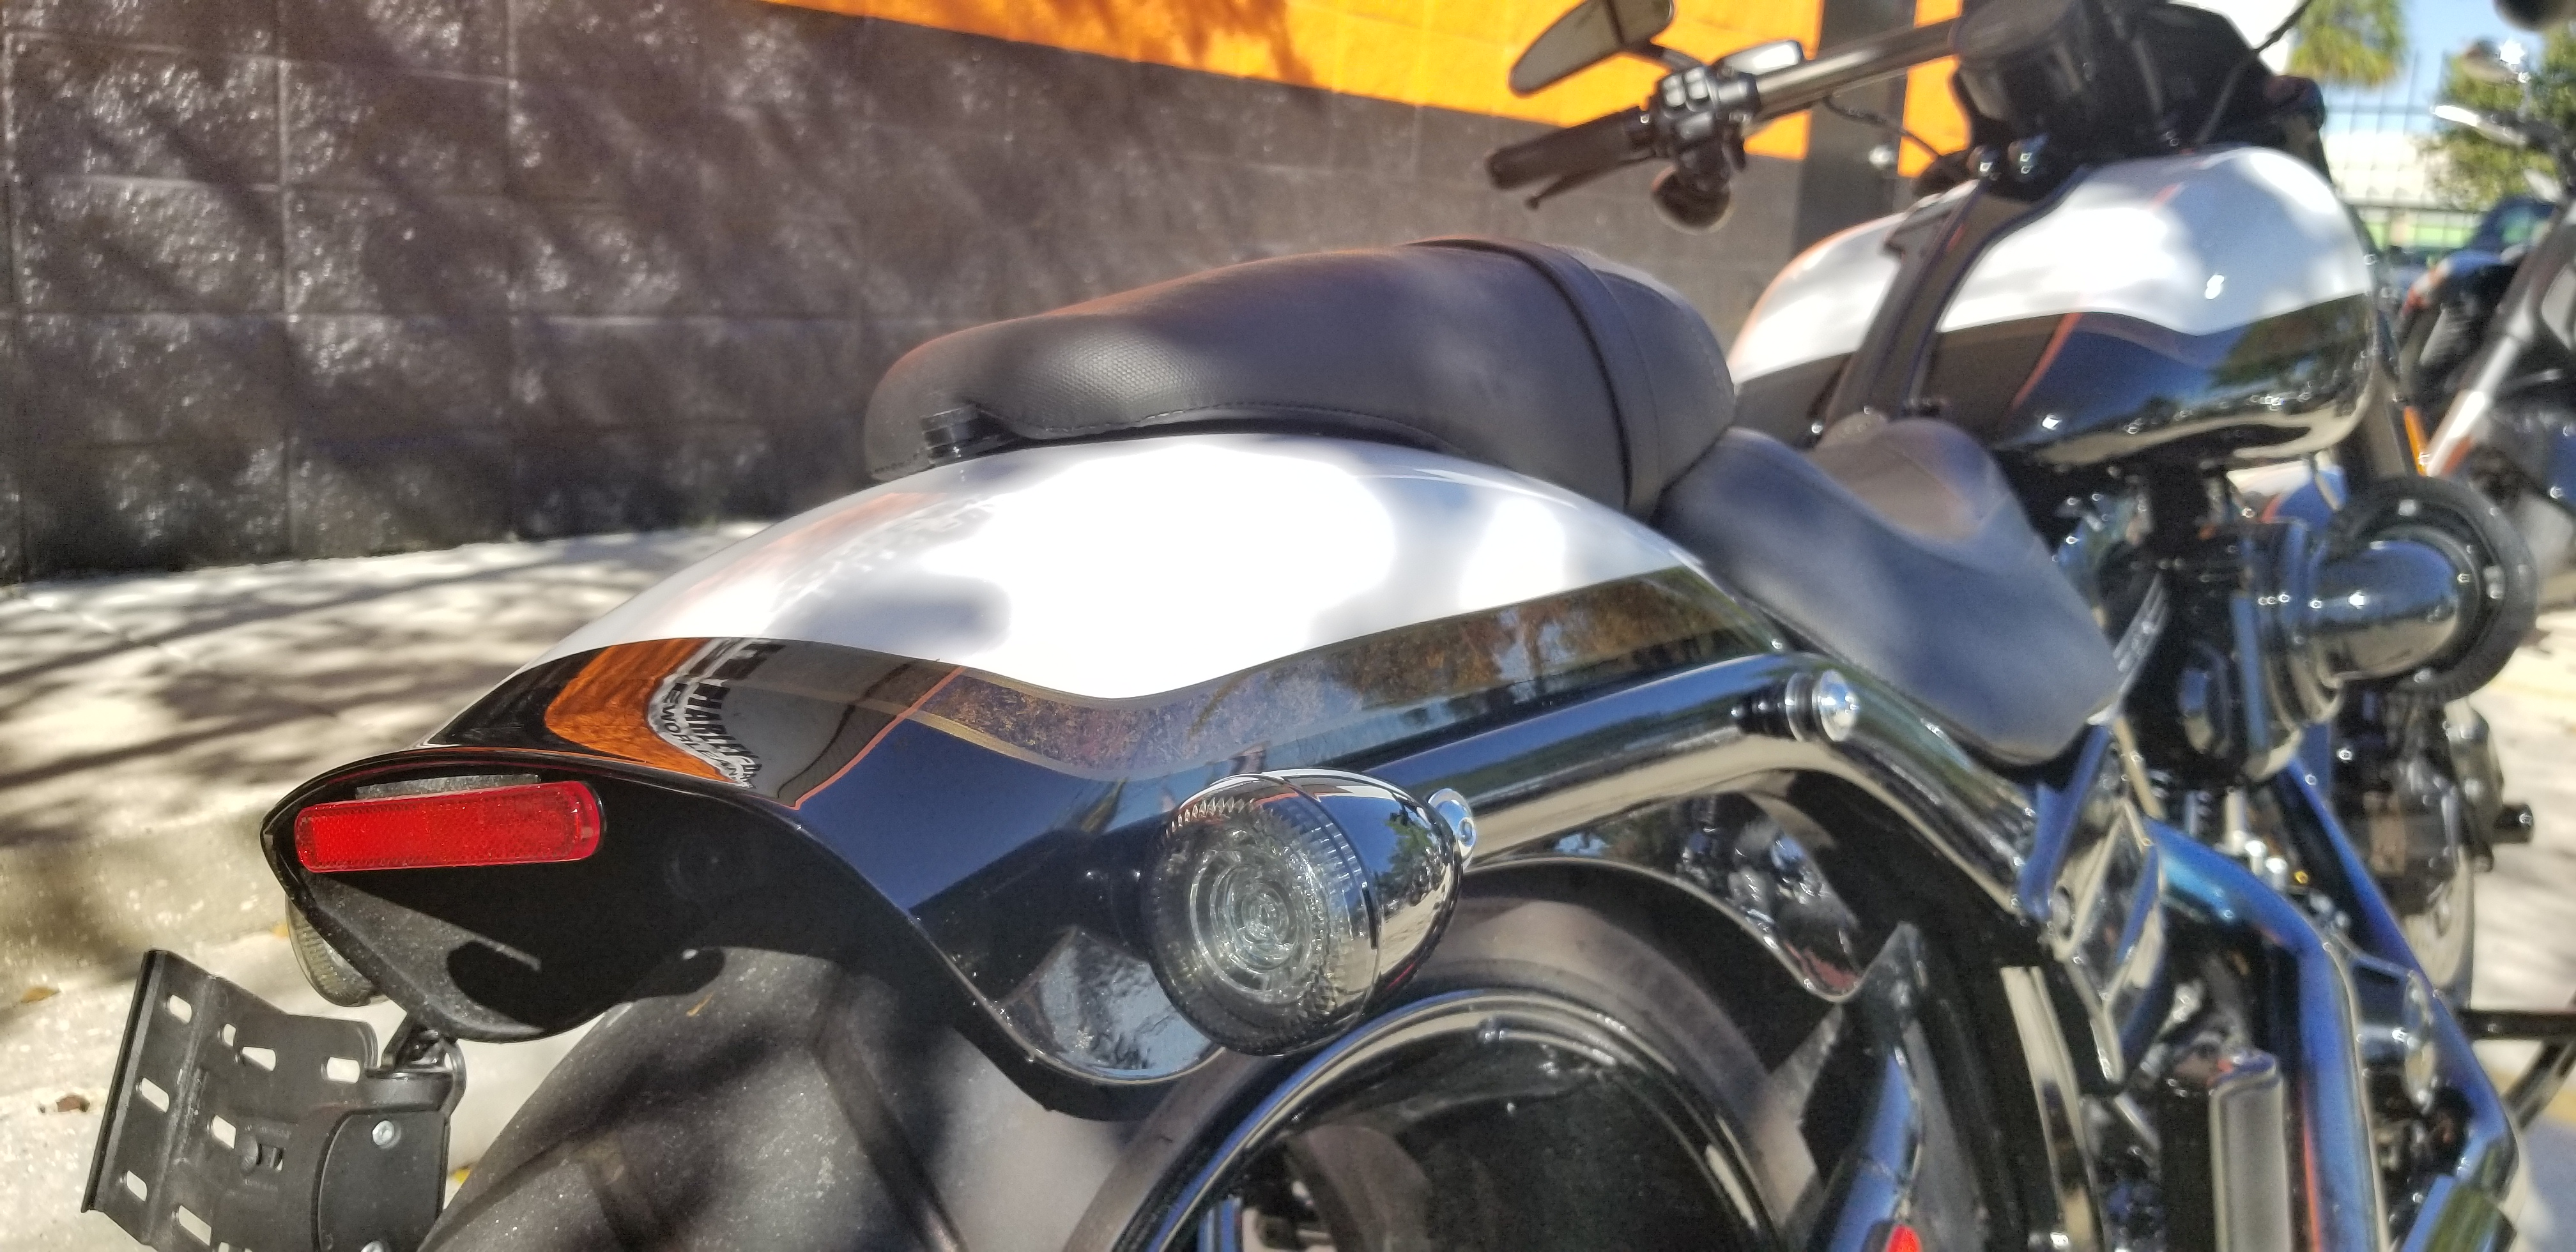 Pre-Owned 2016 Harley-Davidson CVO Pro Street Breakout FXSE